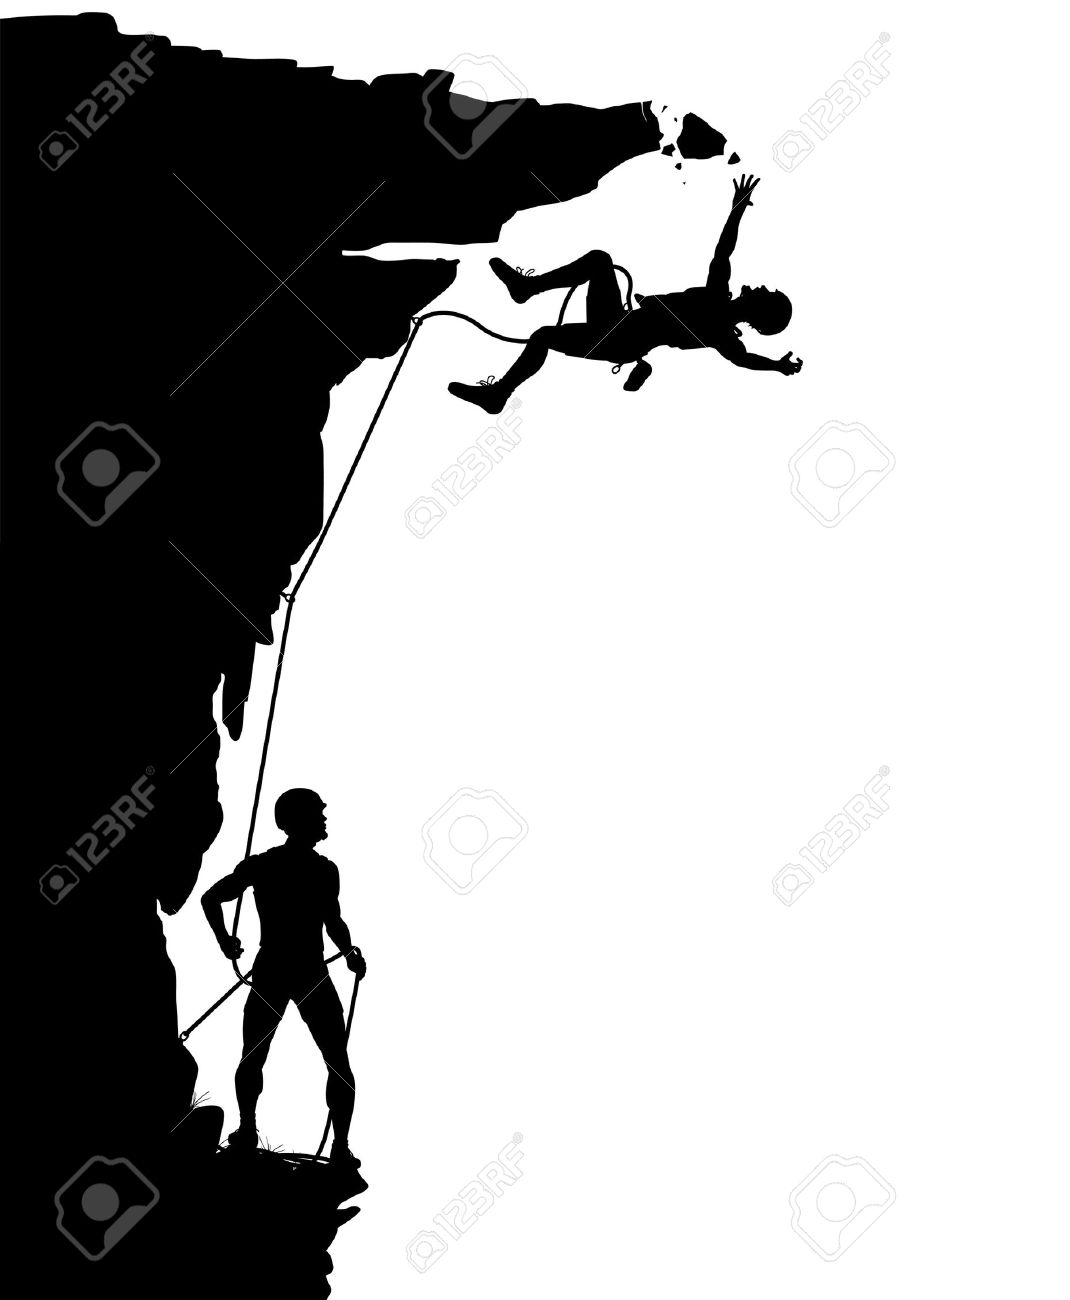 1070x1300 Editable Vector Silhouette Of A Climber Falling From A Breaking